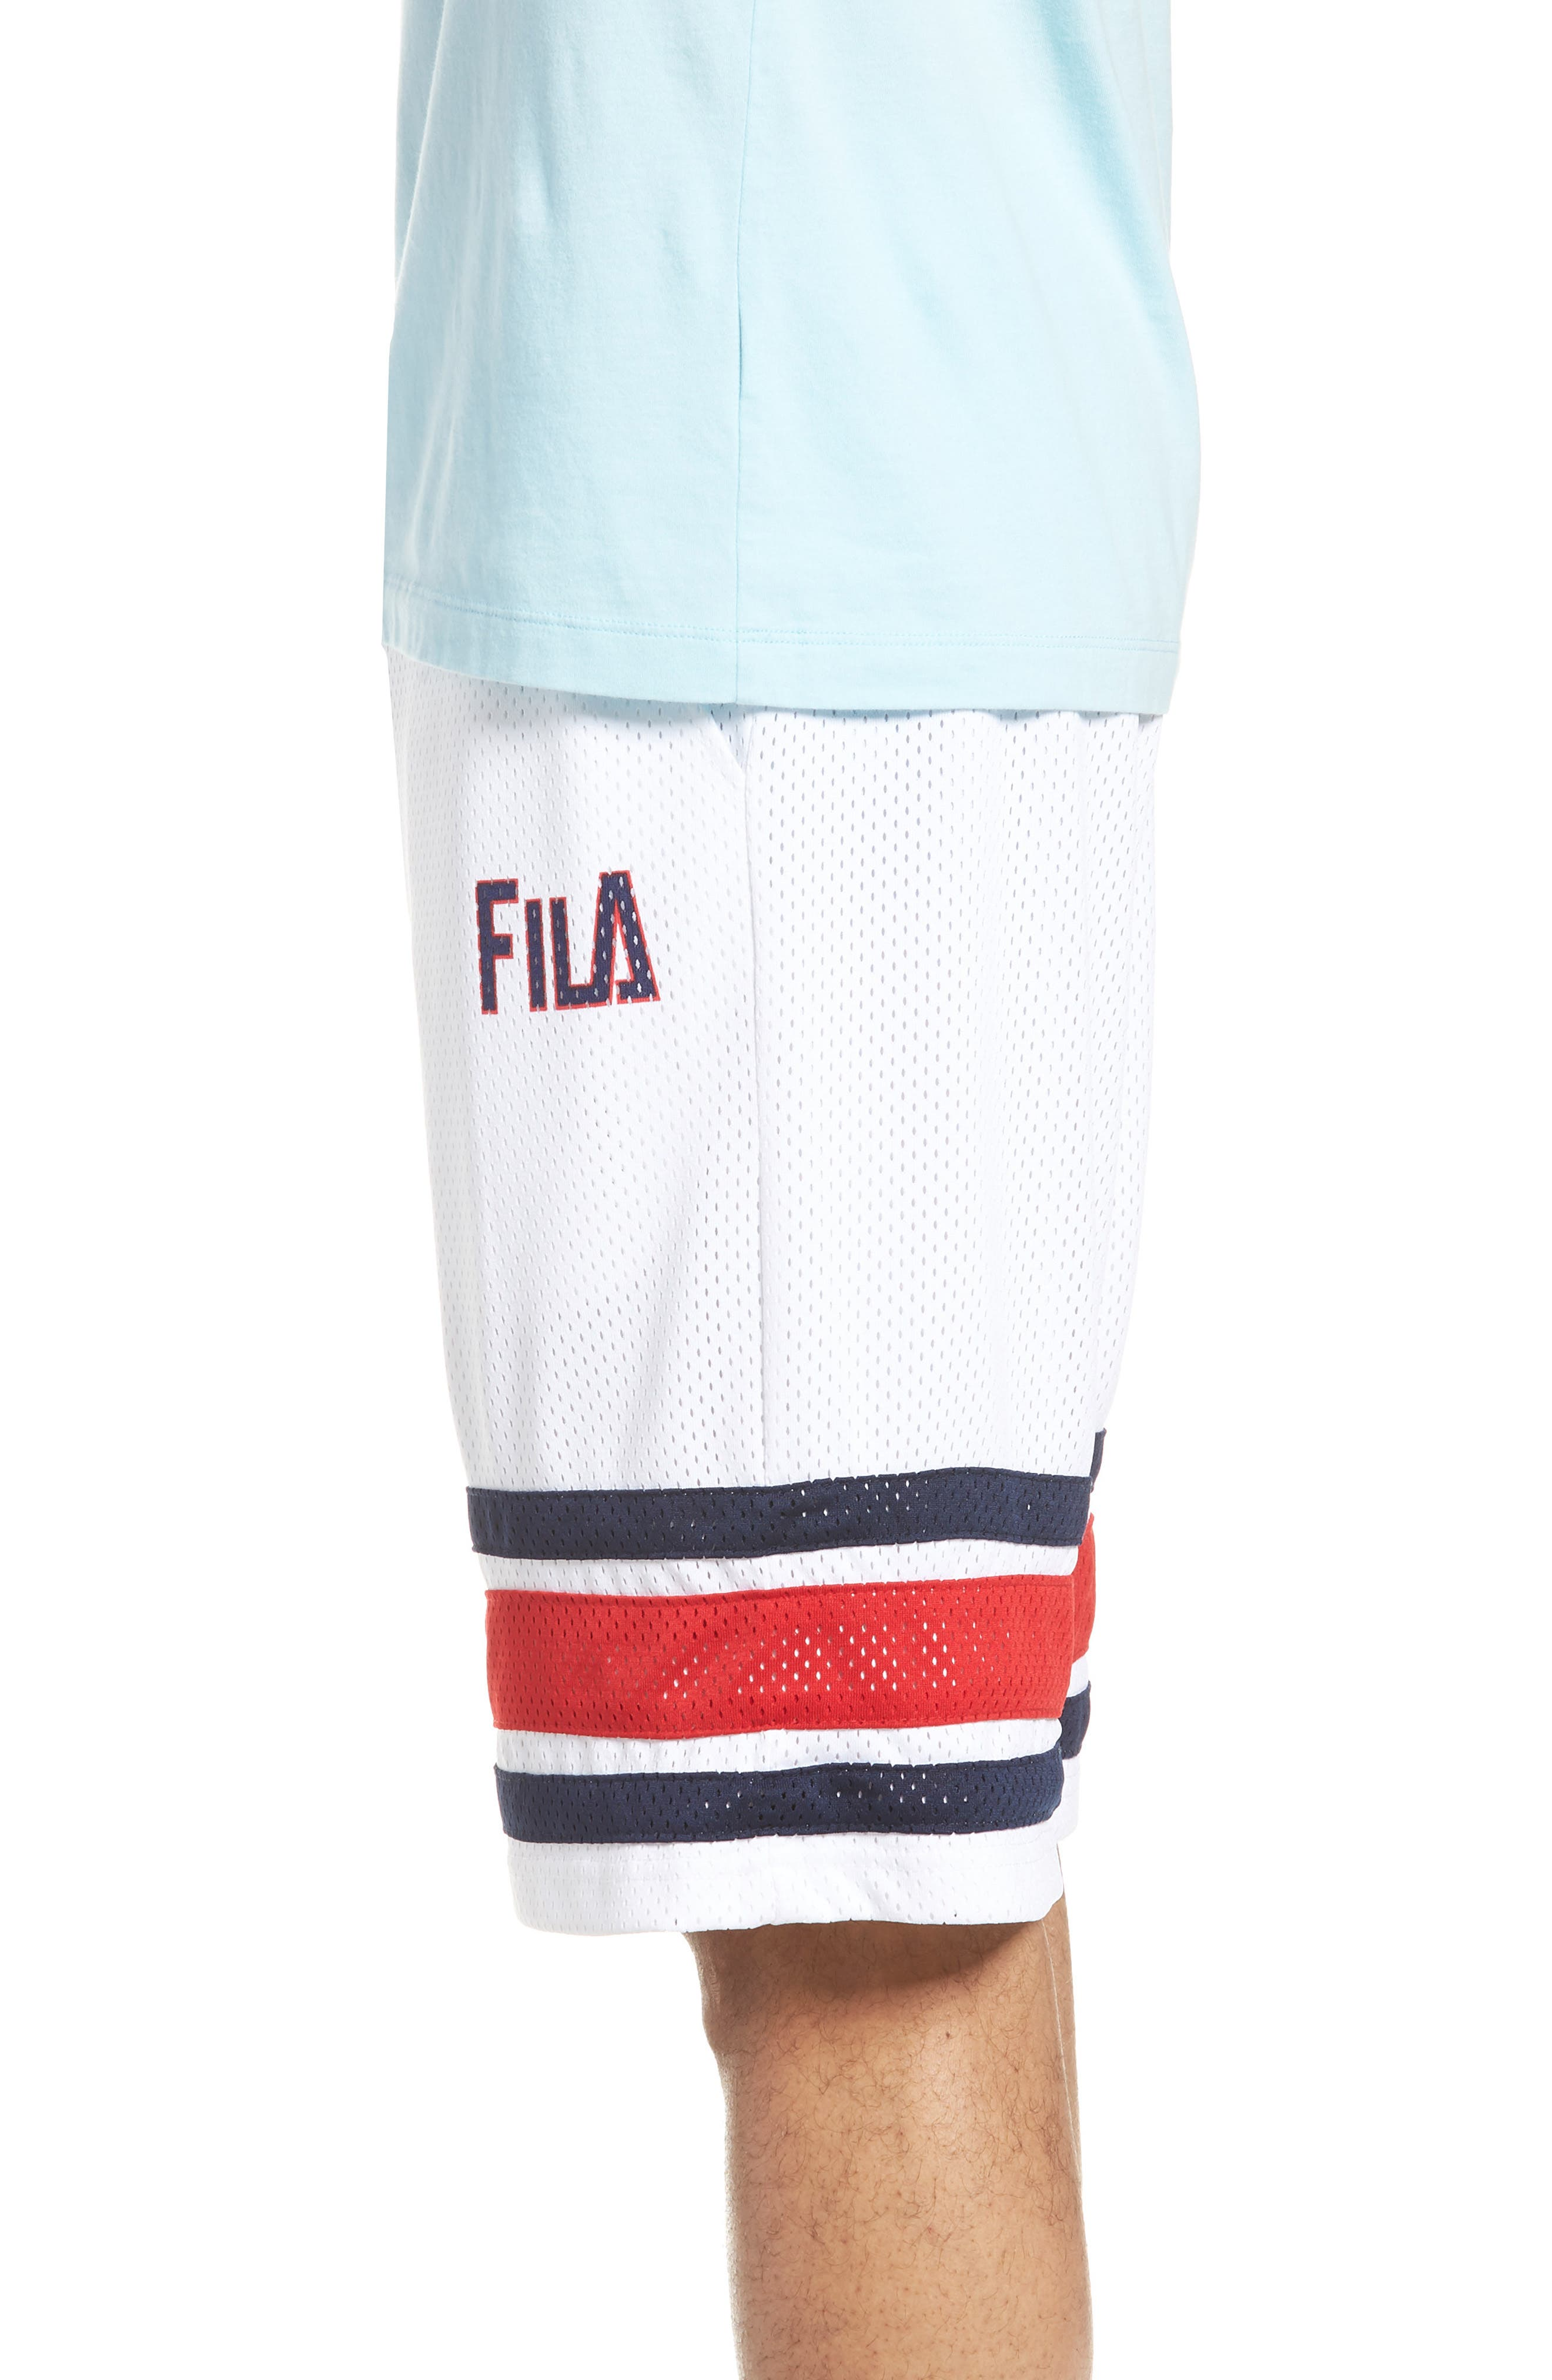 Parker Basketball Shorts,                             Alternate thumbnail 3, color,                             White/ Peacoat/ Chinese Red